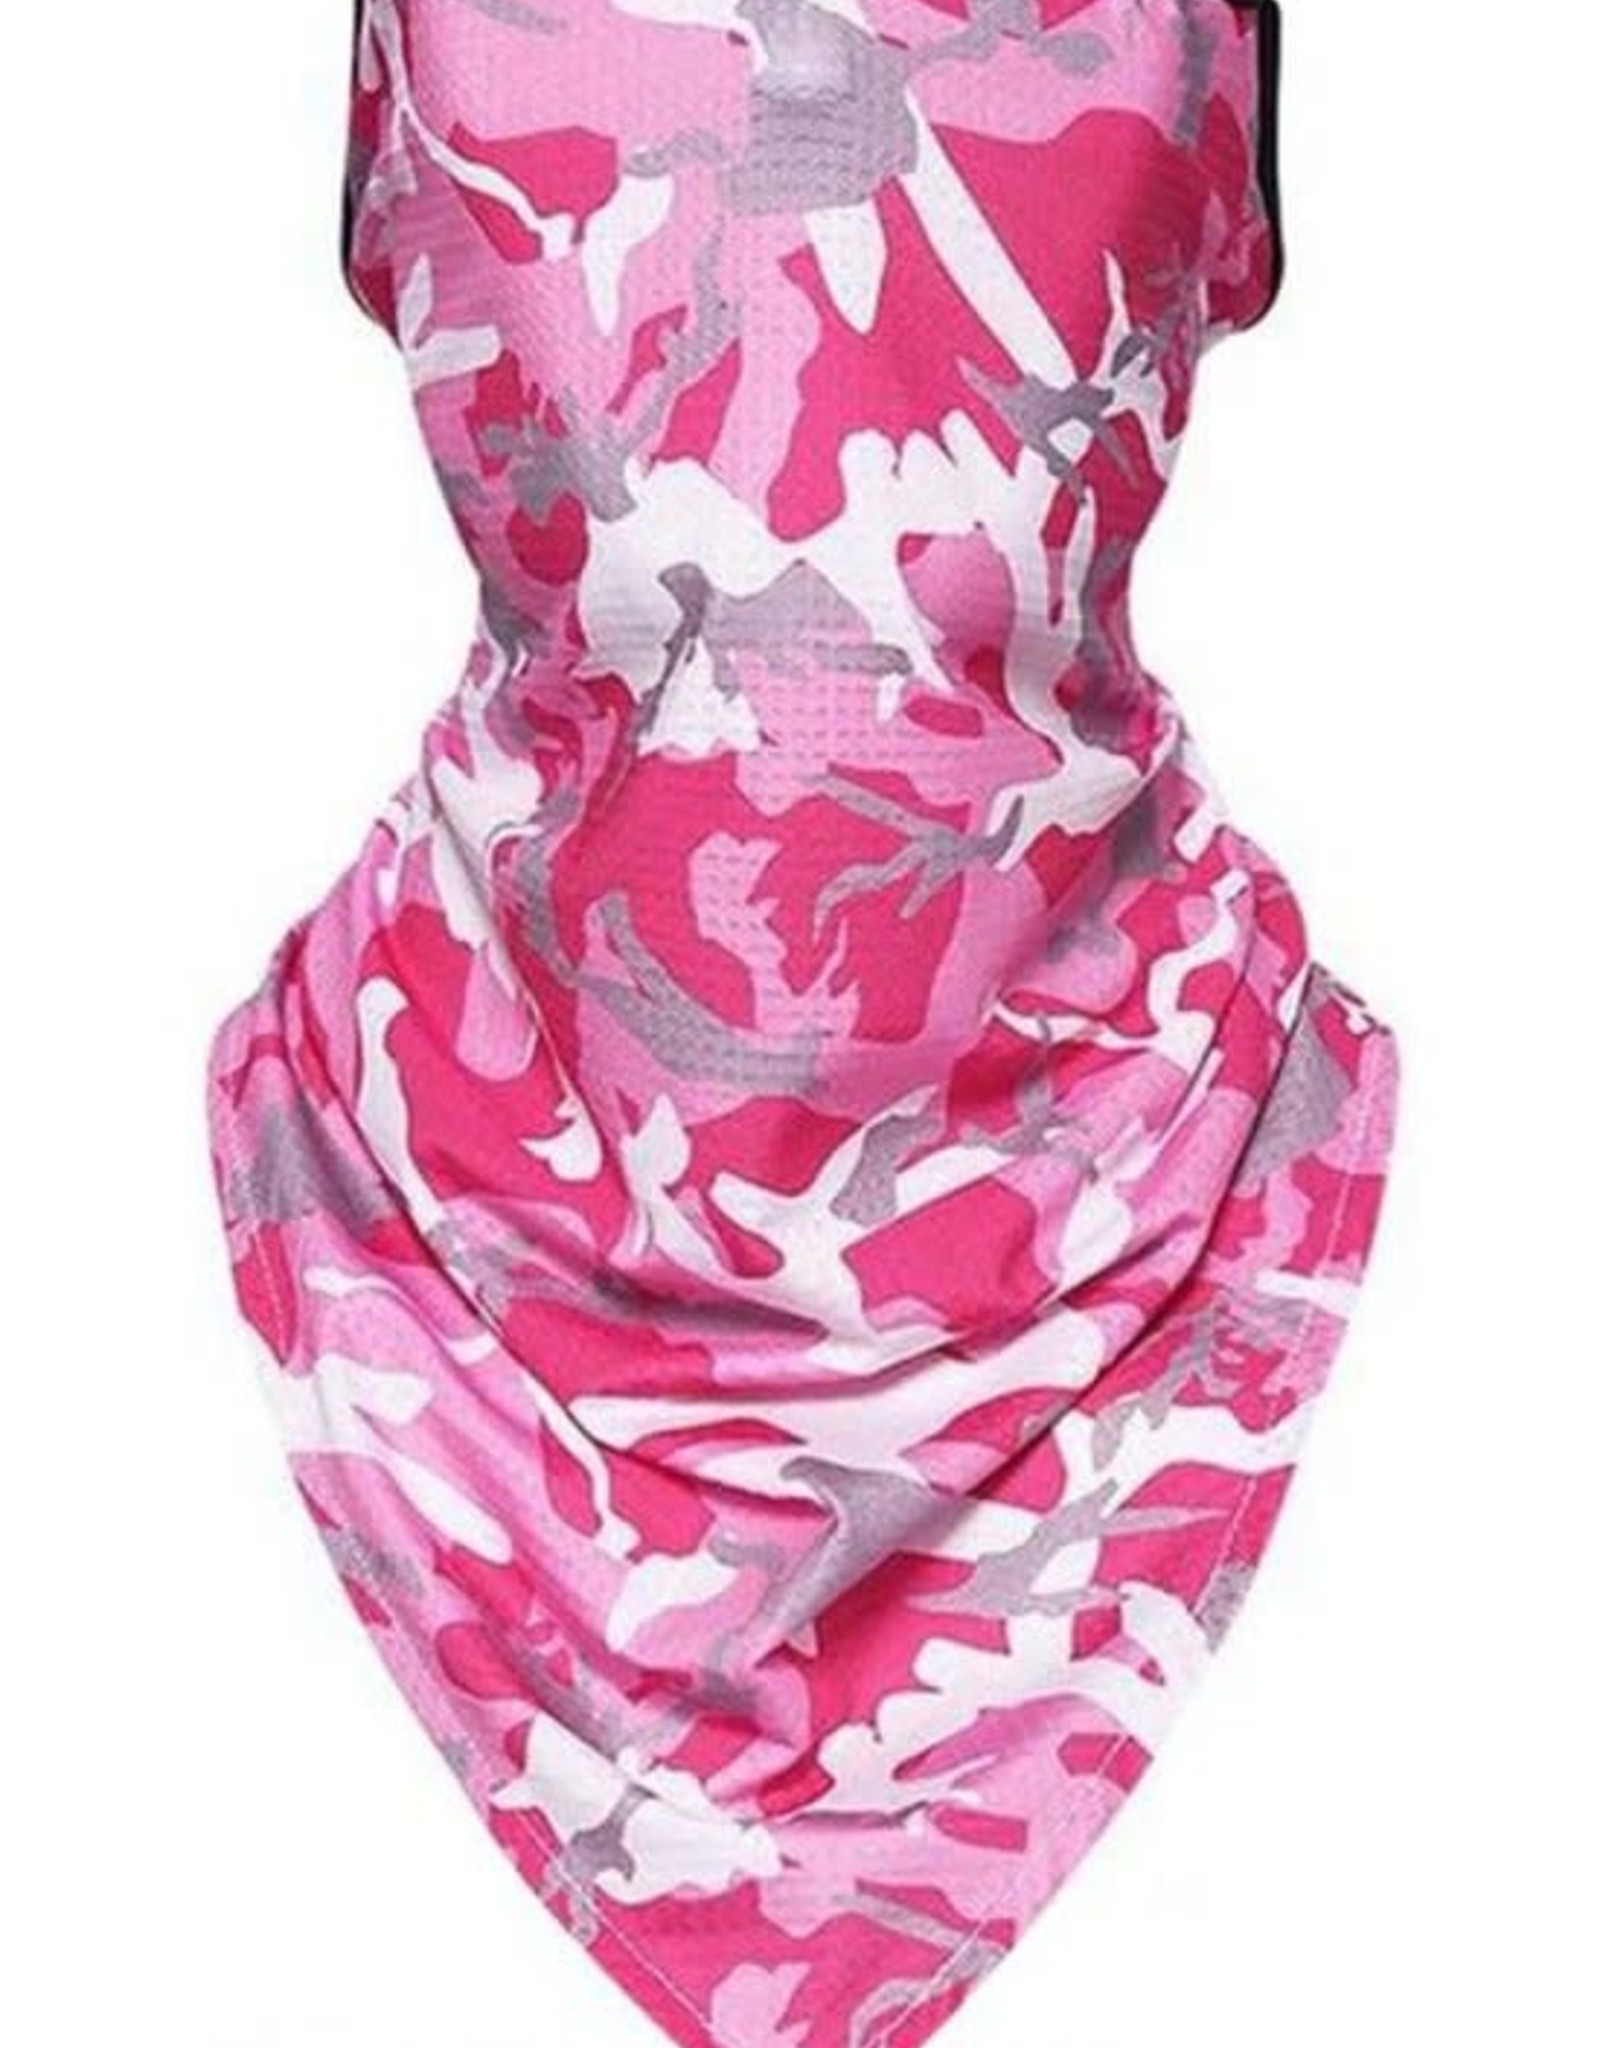 GAITOR COOLING MOISTURE WICK CAMO PINK PRINT MASK UNISEX